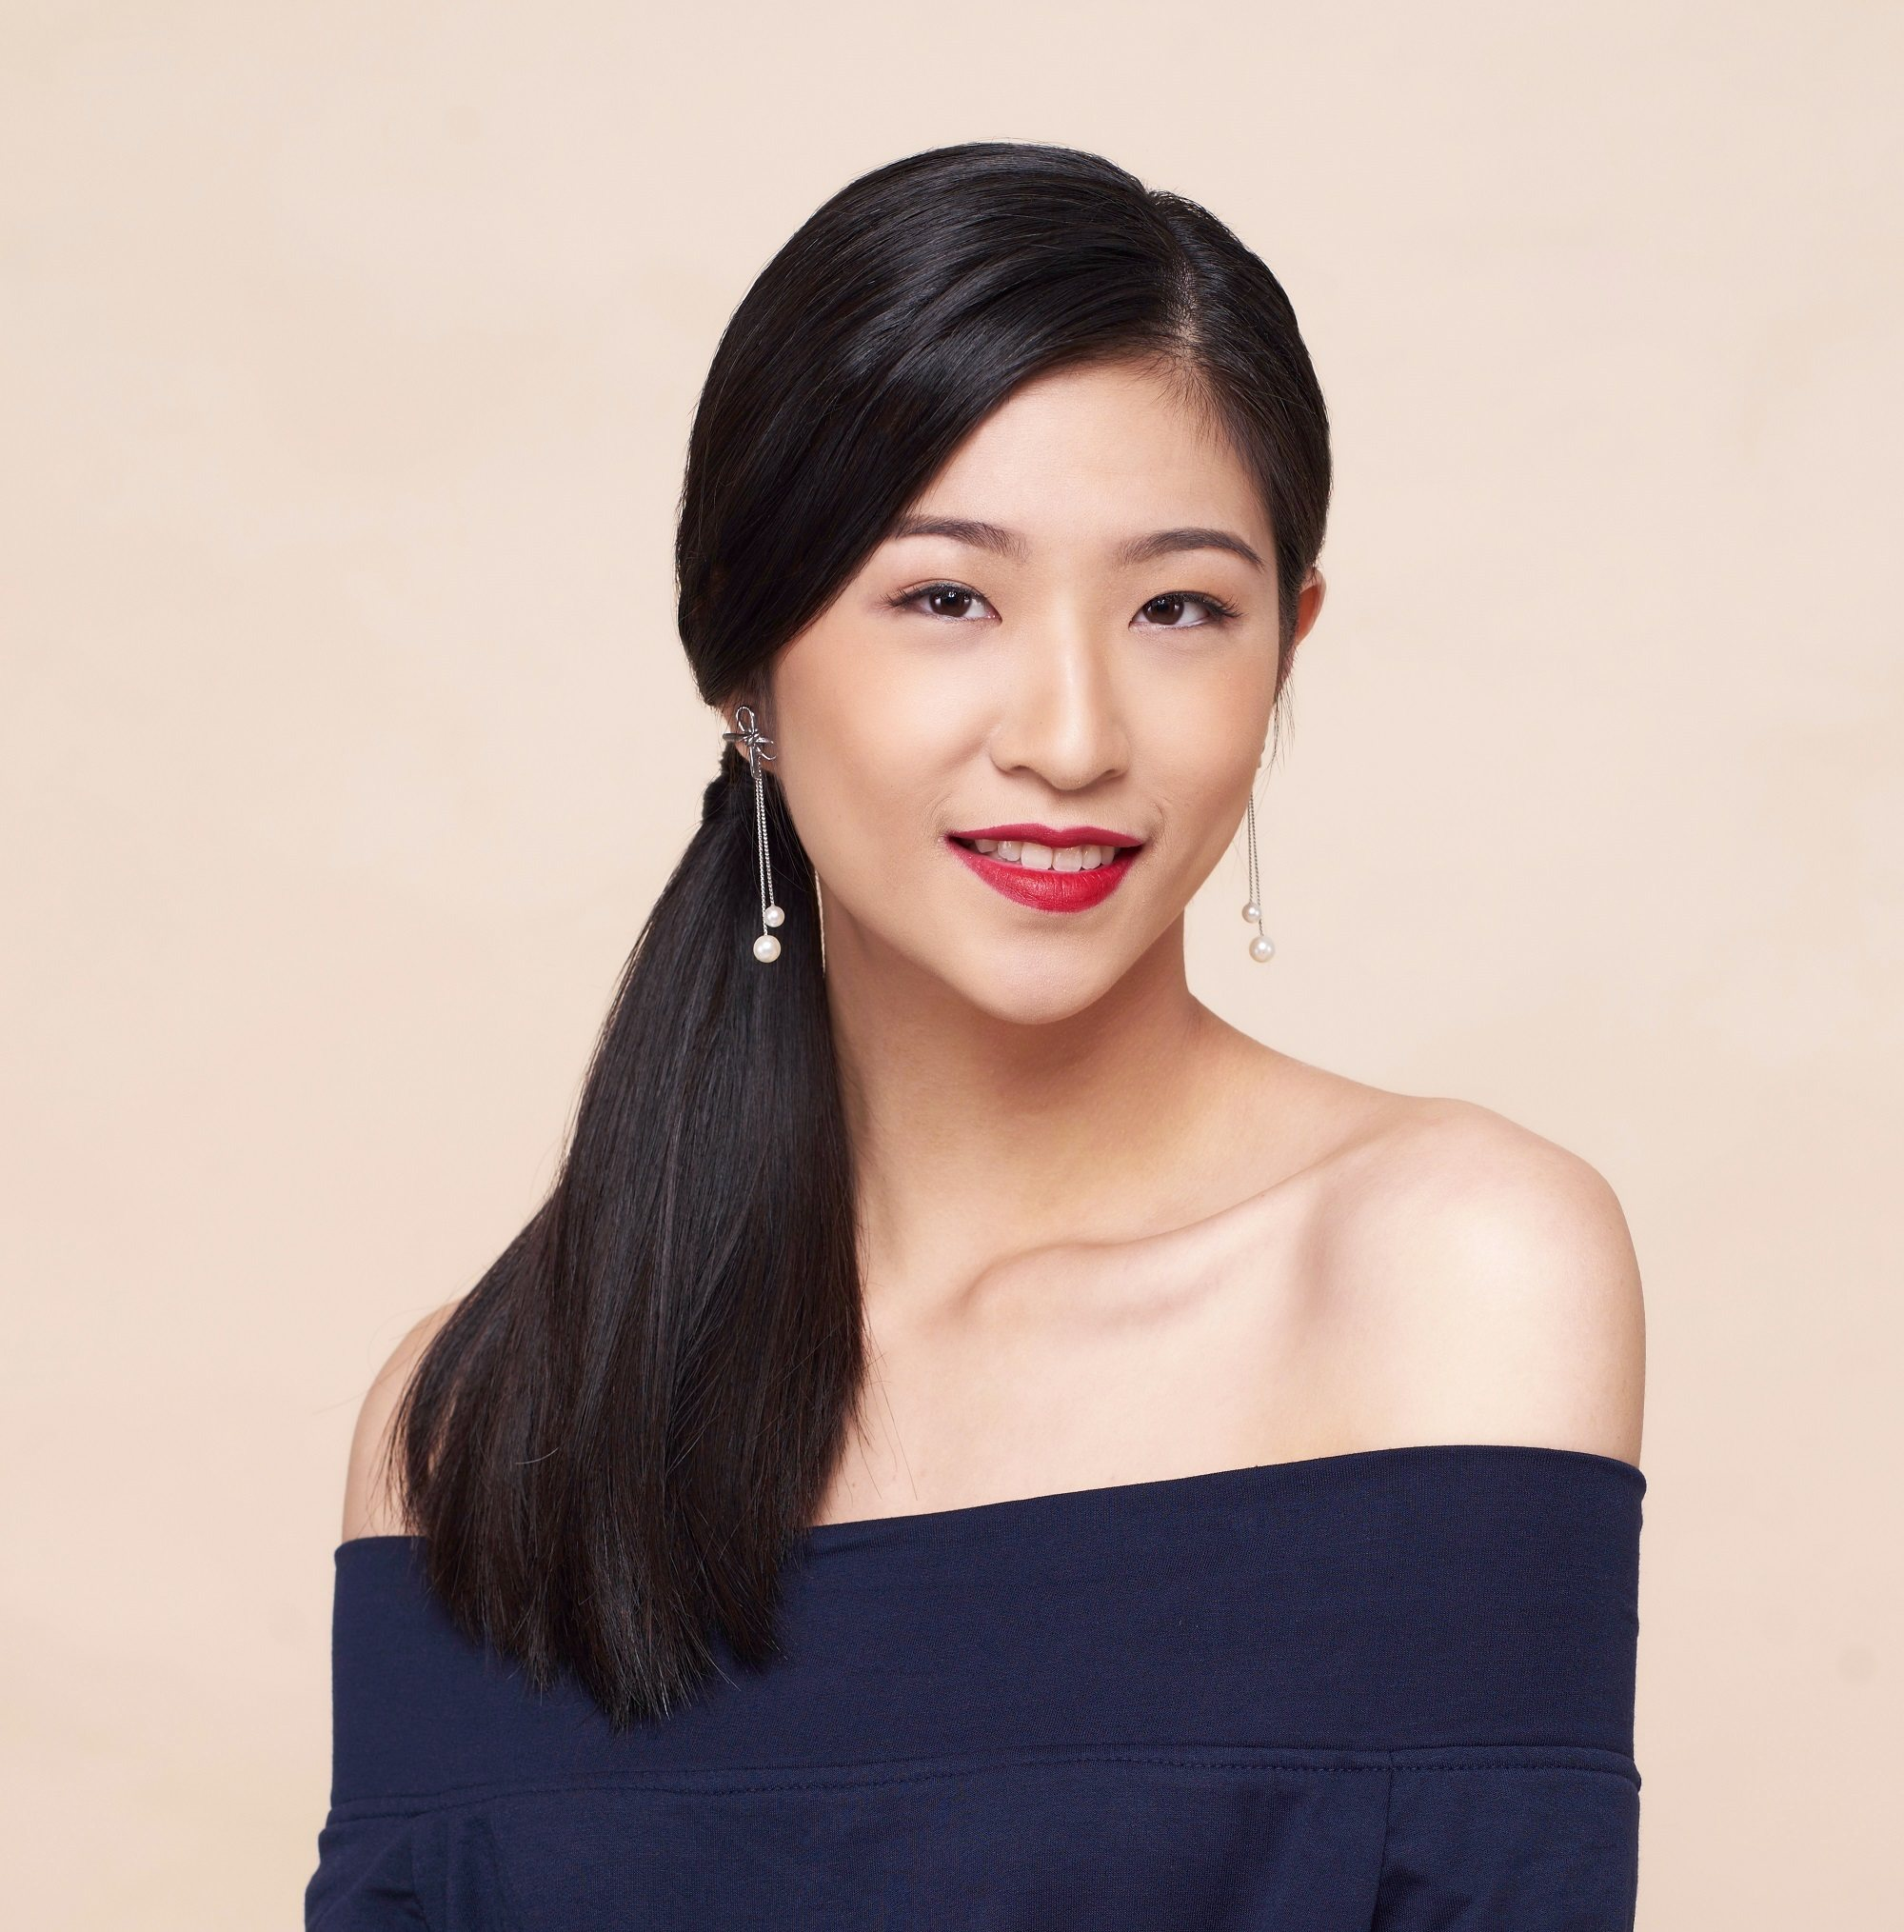 Christmas Hairstyles For Black Hair.The 7 Best Christmas Party Hairstyles Perfect For Merrymaking